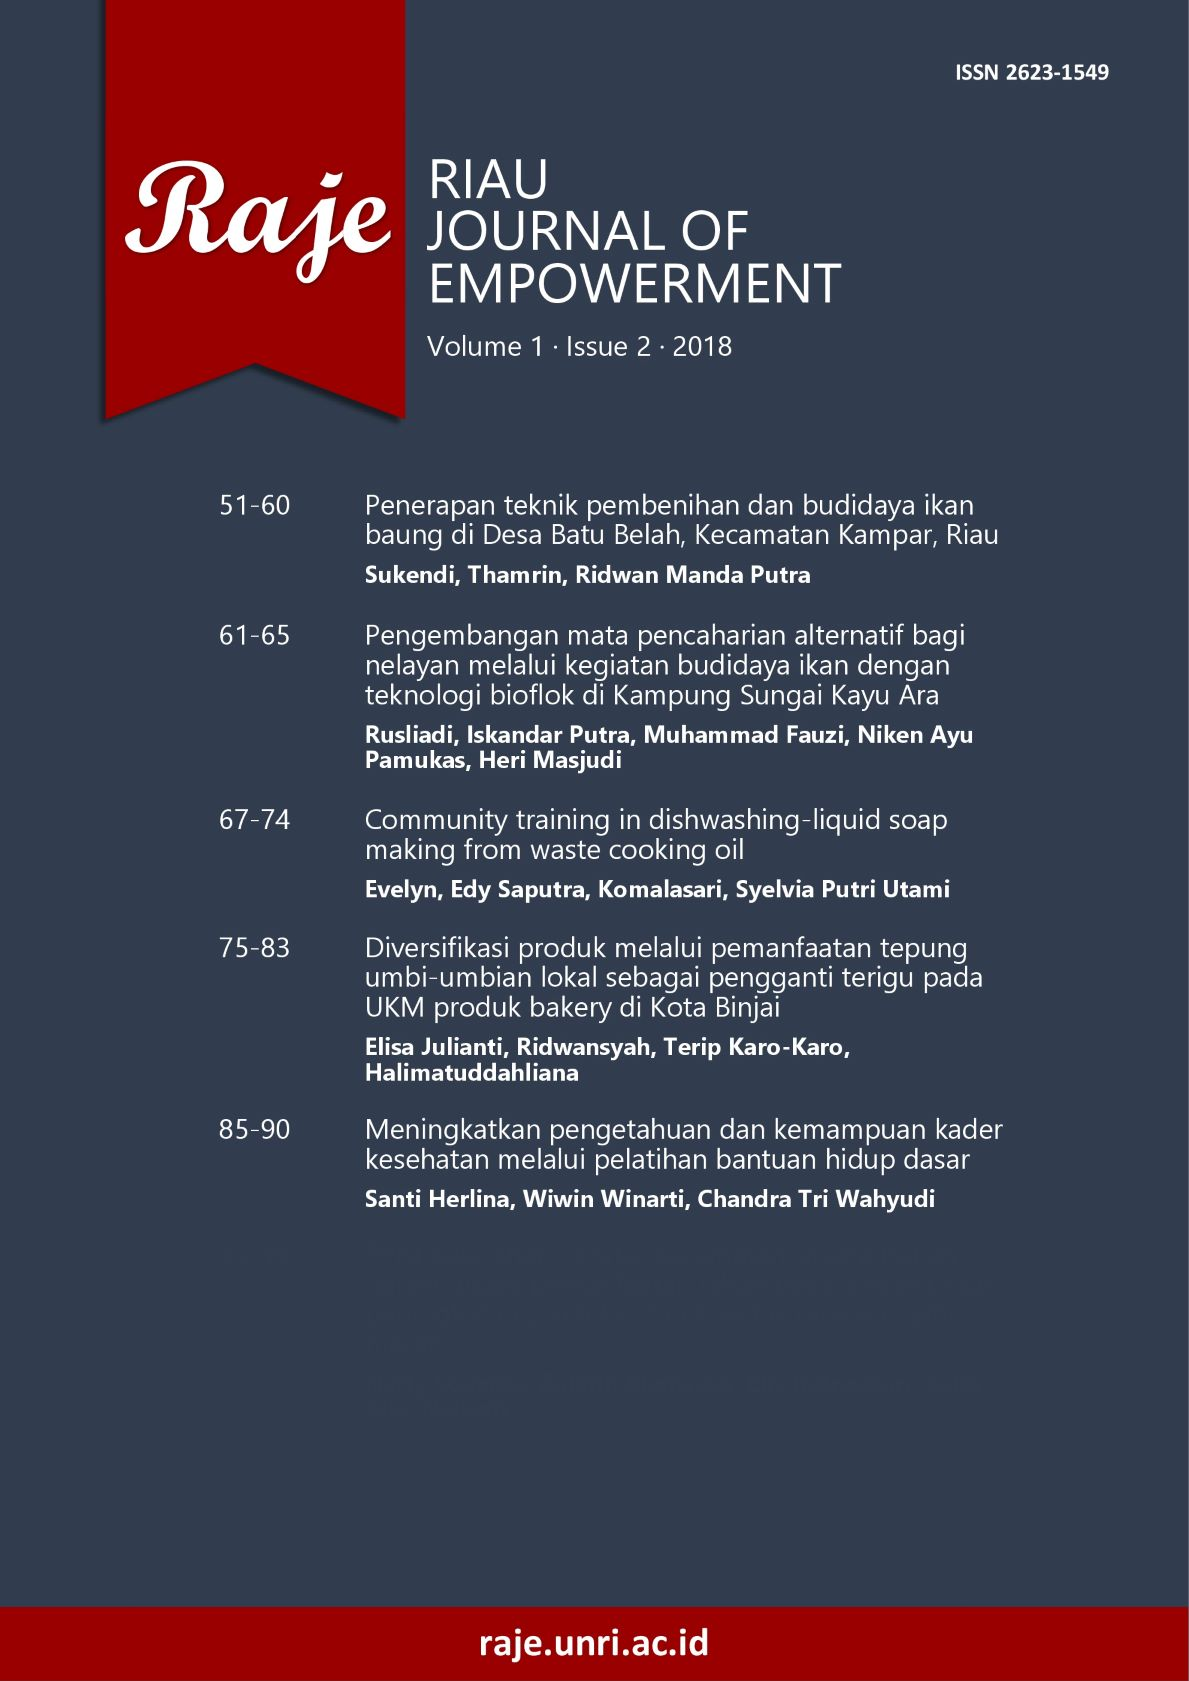 Riau Journal of Empowerment 1(2) 2018